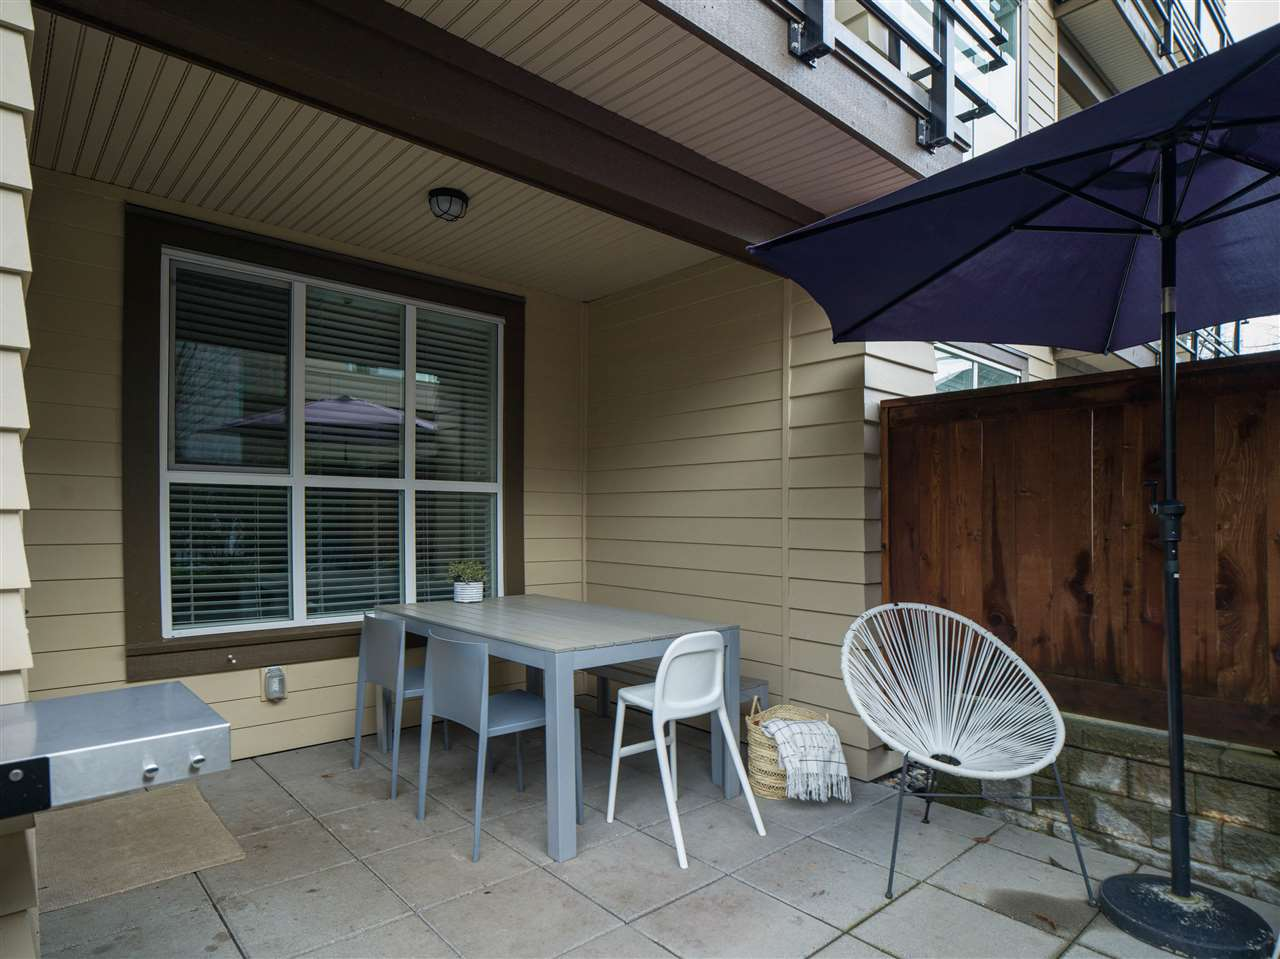 101 3205 MOUNTAIN HIGHWAY - Lynn Valley Apartment/Condo for sale, 2 Bedrooms (R2527517) - #24